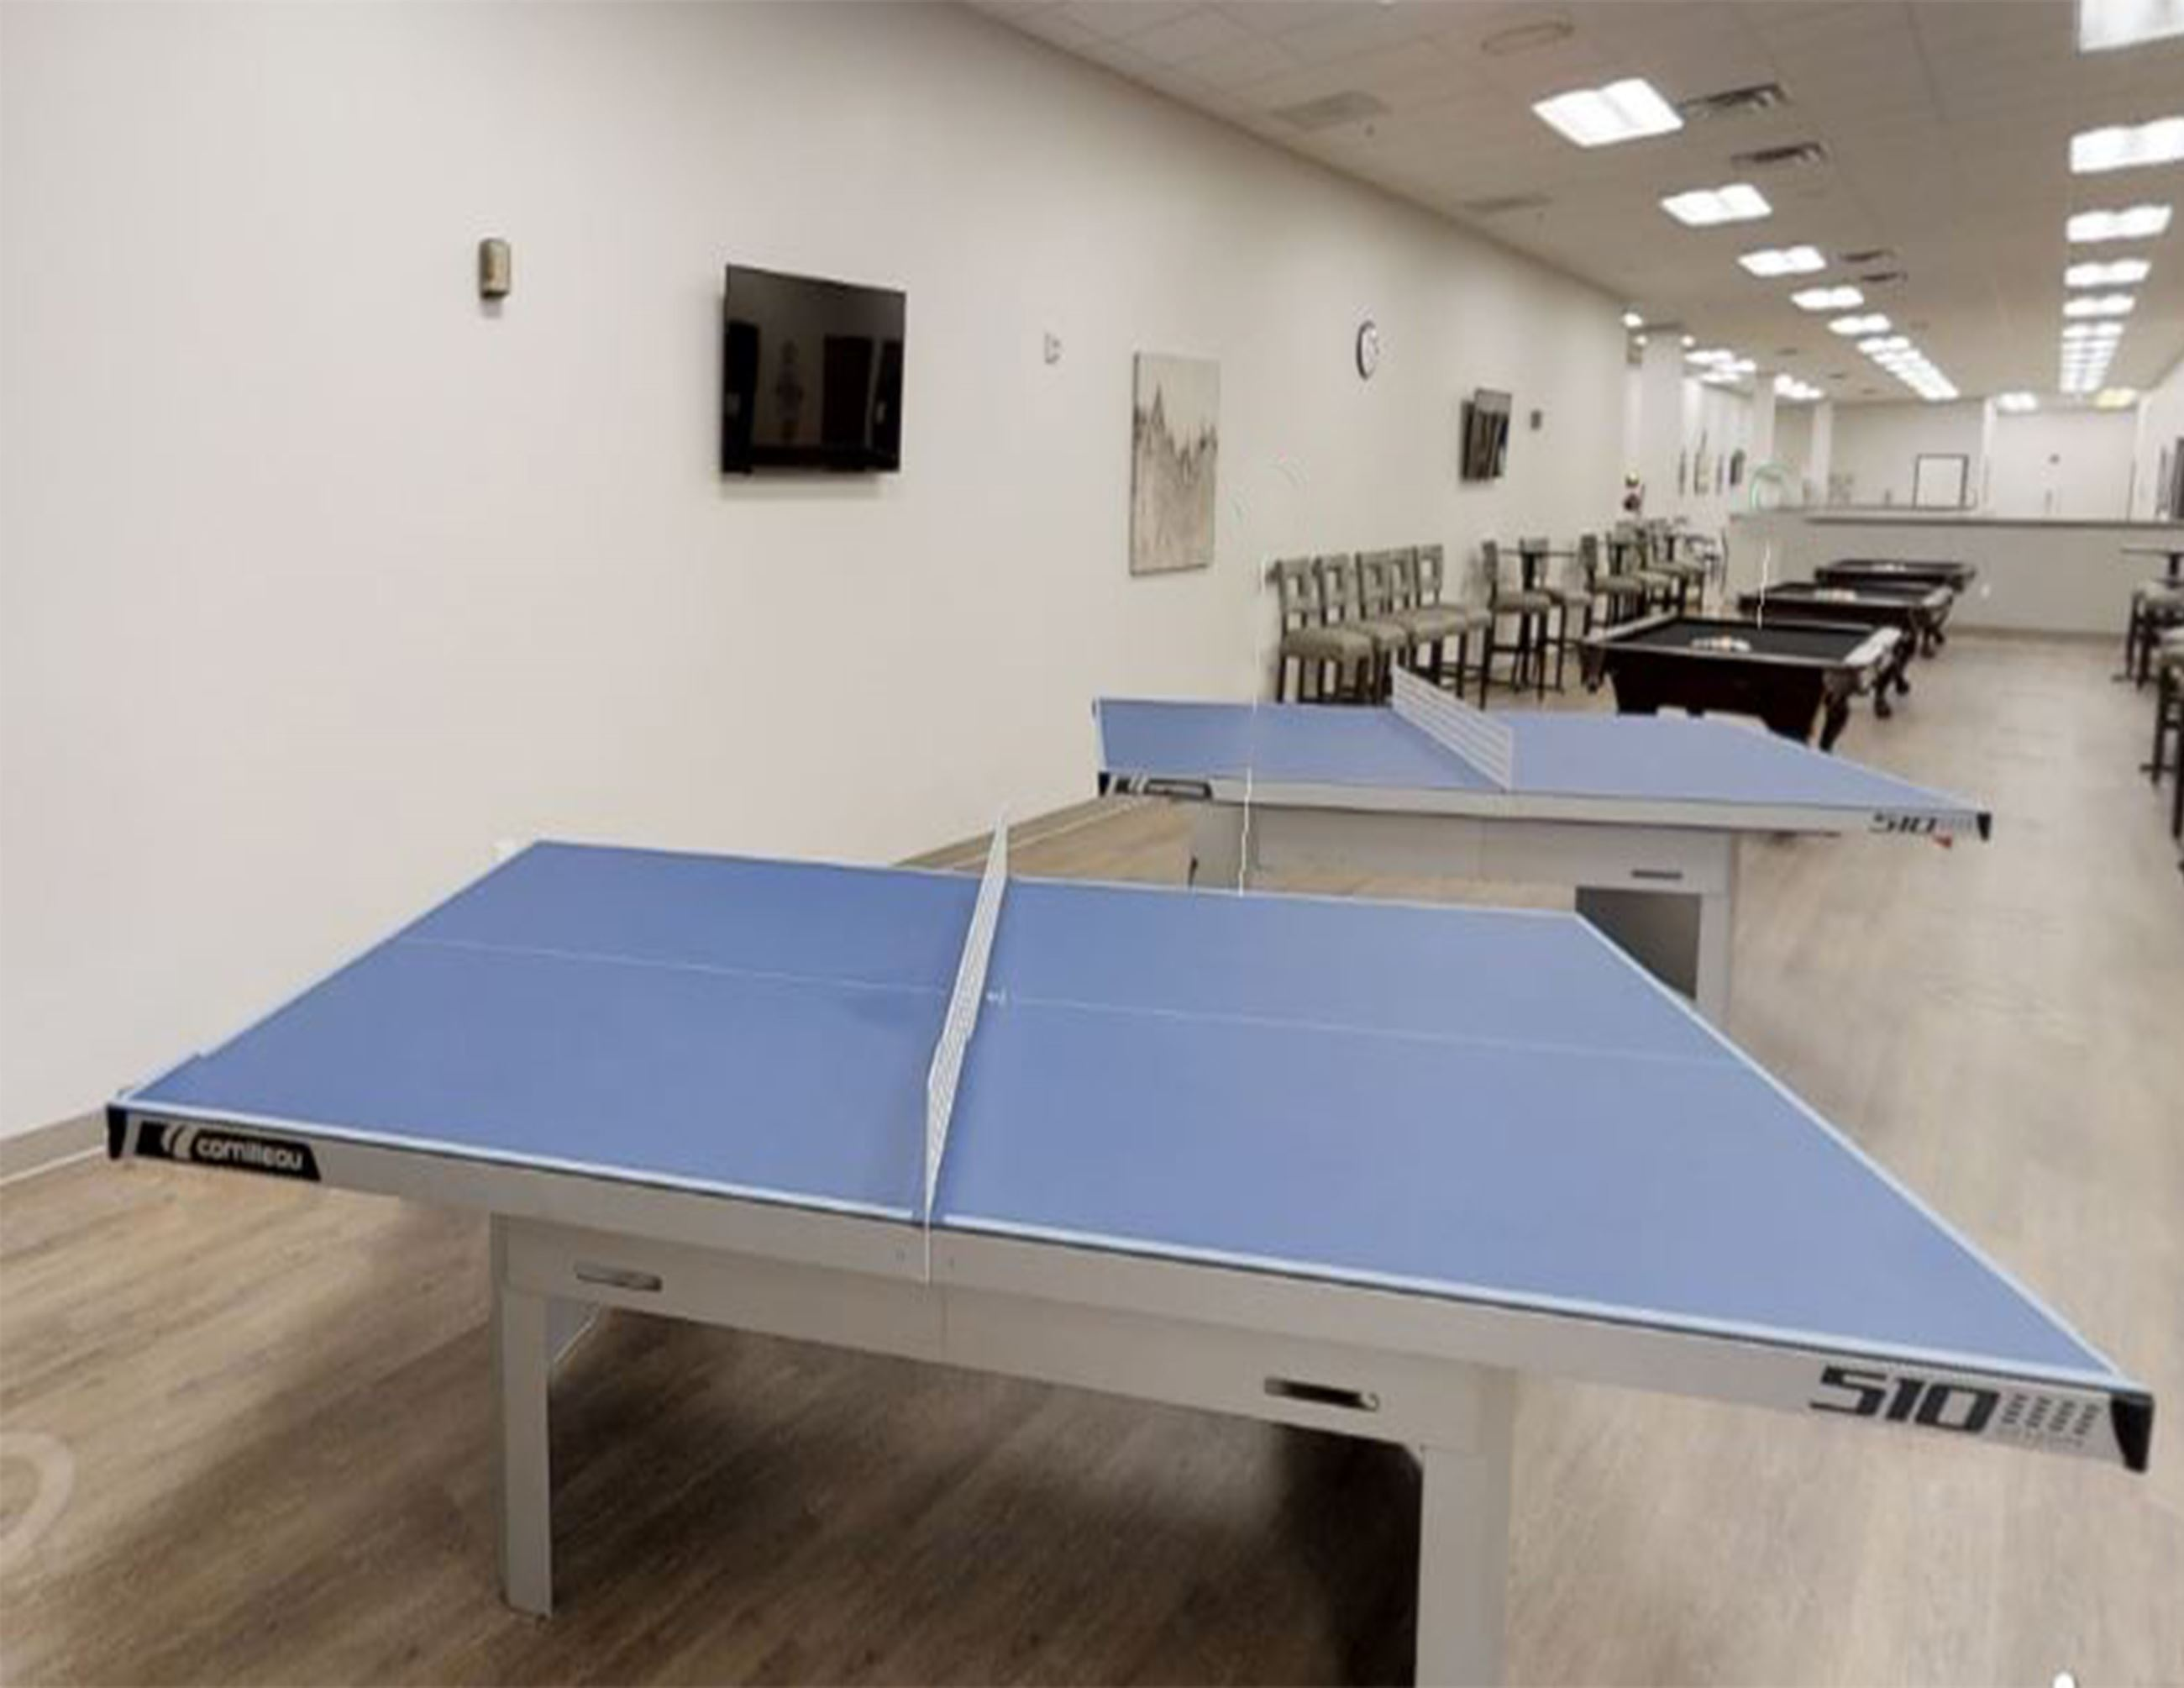 Wellmed PingPong and Pool